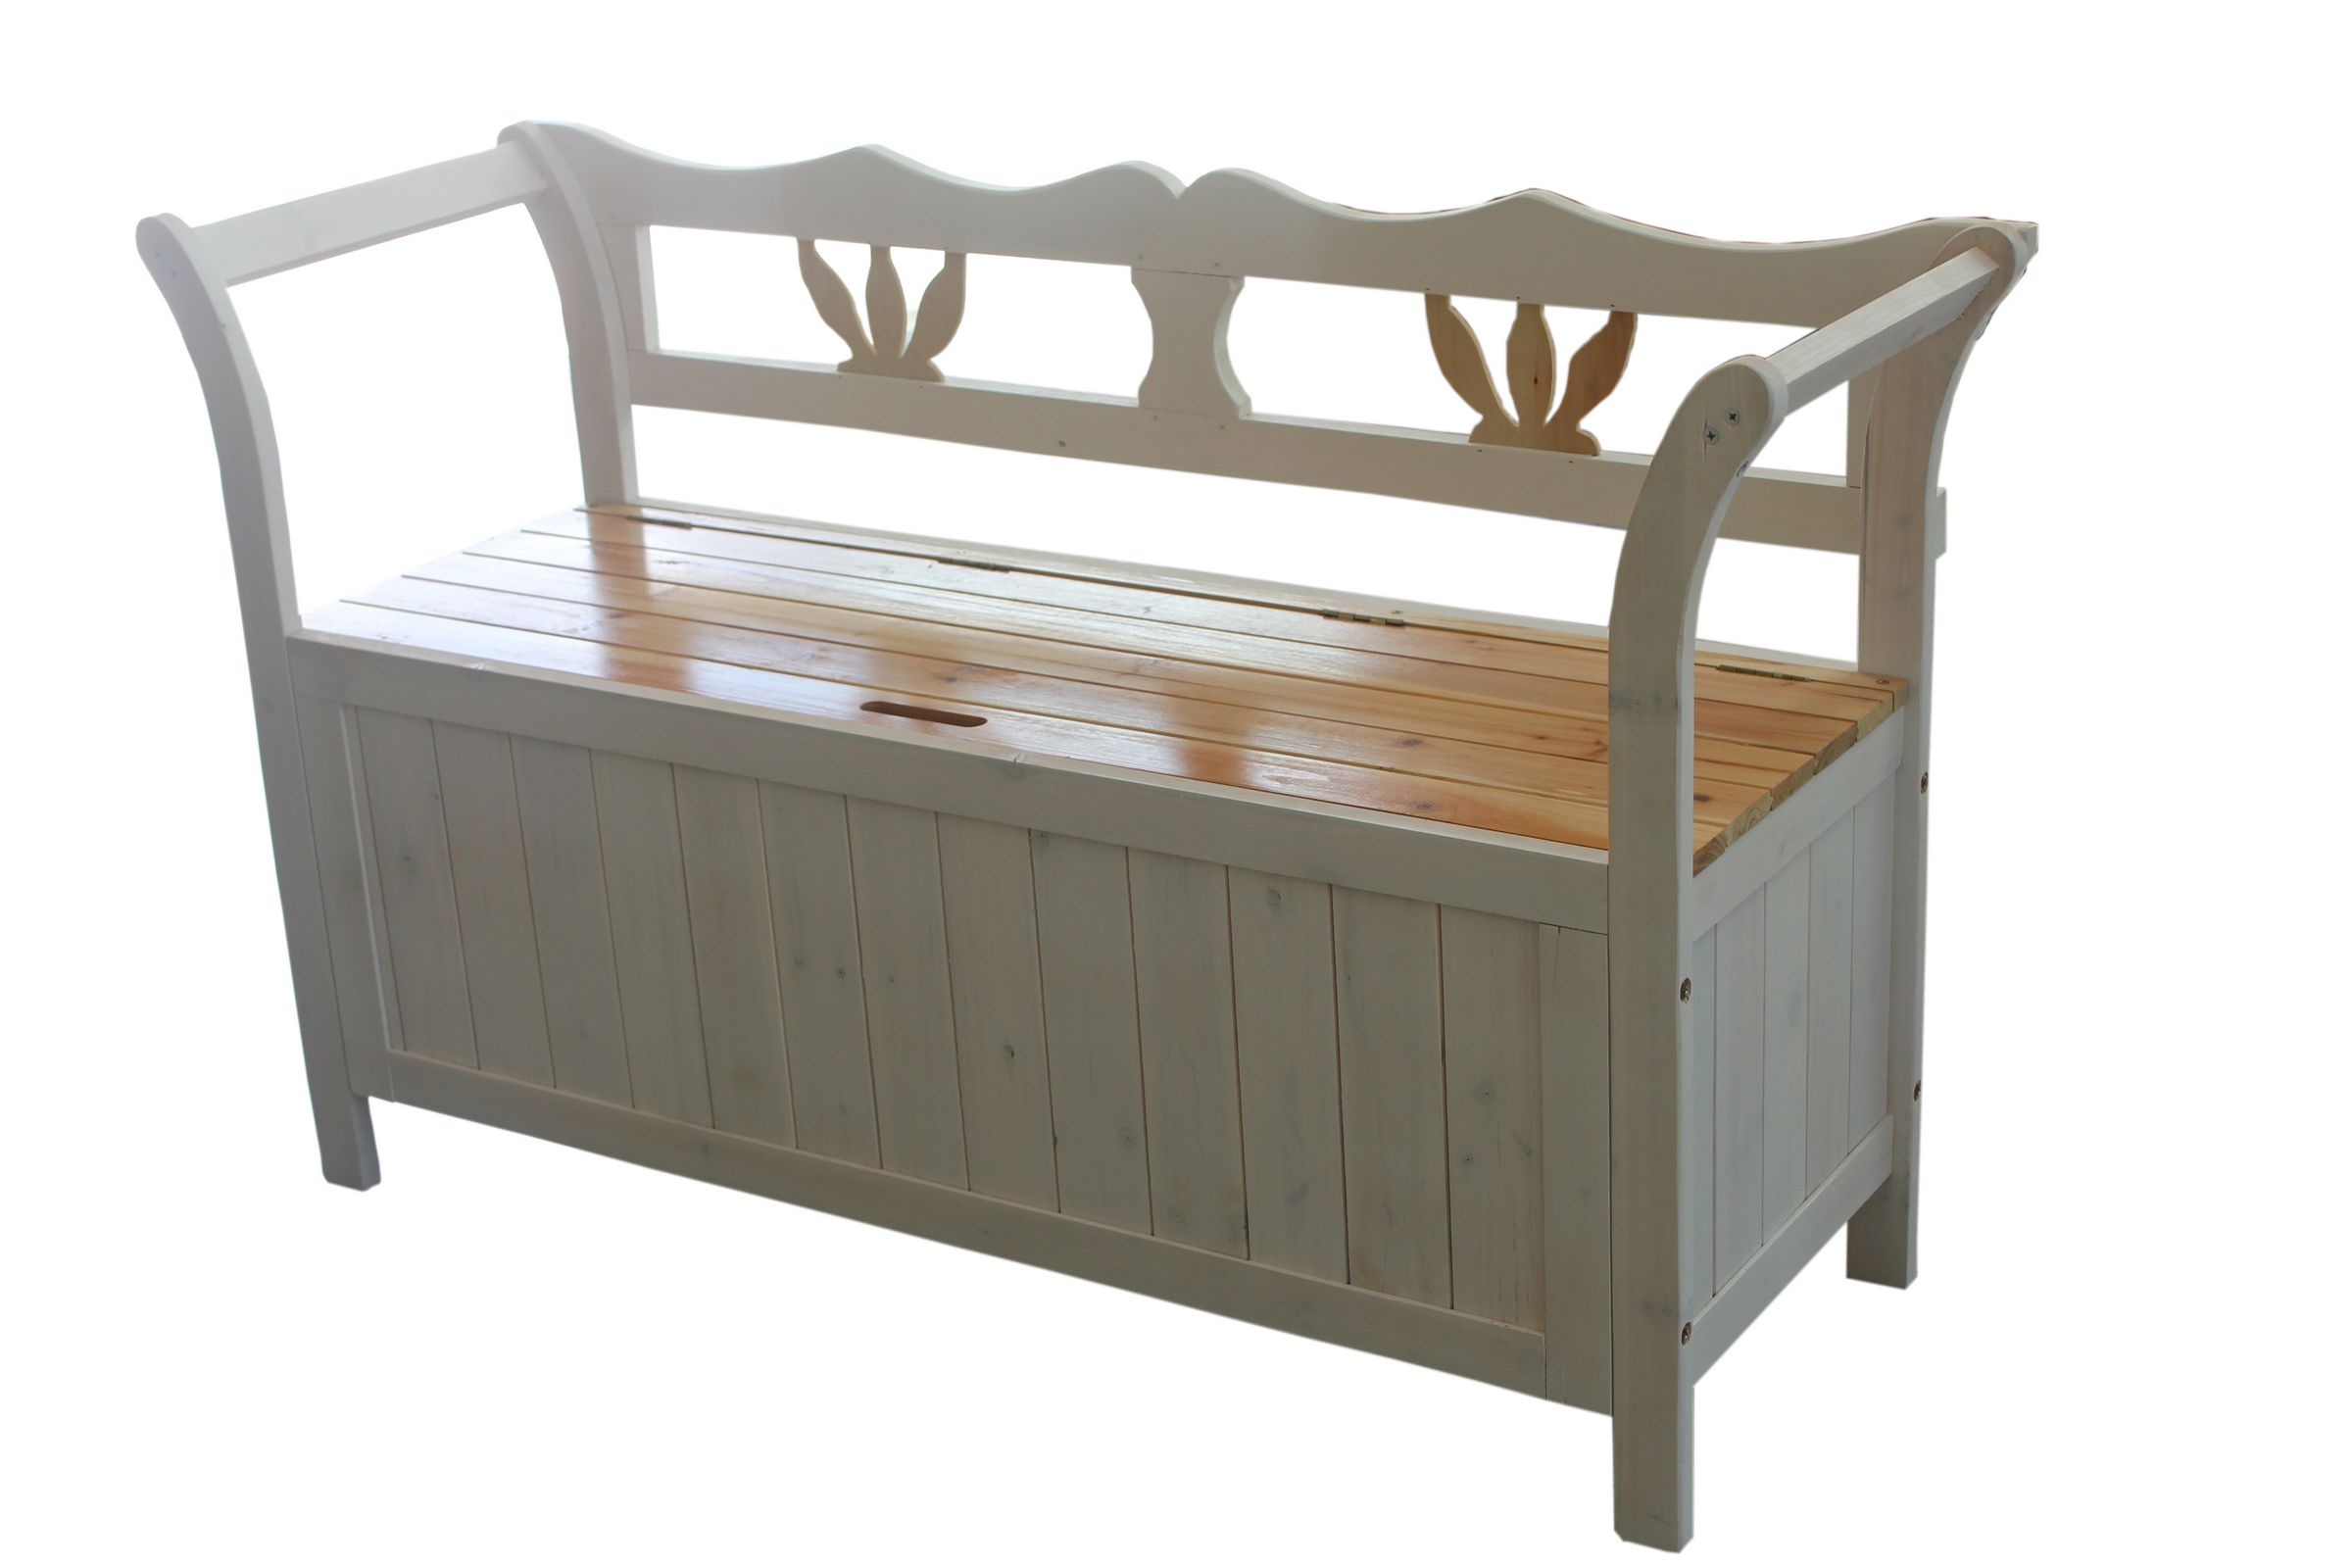 Foxhunter White Wooden Seat Bench Chair Cabinet Storage Garden Patio Furniture Ebay